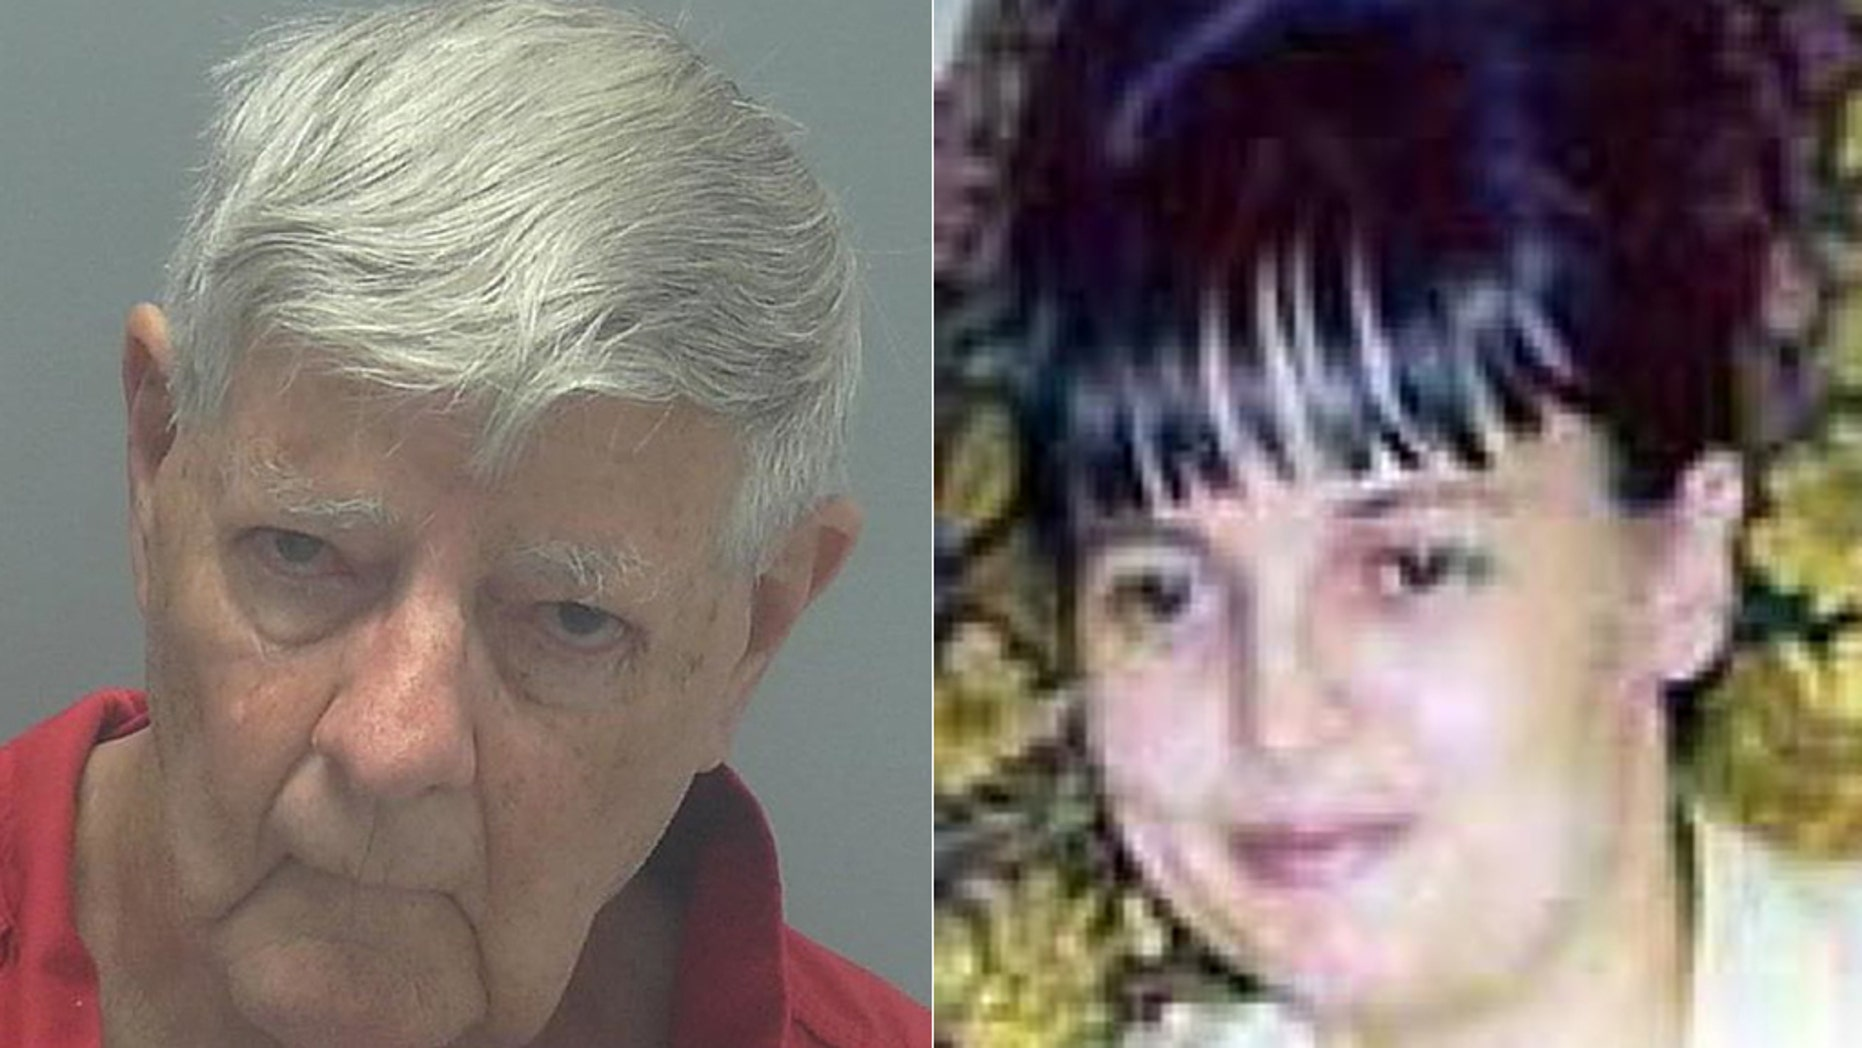 John Bayerl, 78, of Fort Meyers, Fla., (l.) was charged this week with first-degree murder in the death of his wife 38-year-old Dona Mae Bayerl who disappeared 40 years ago.